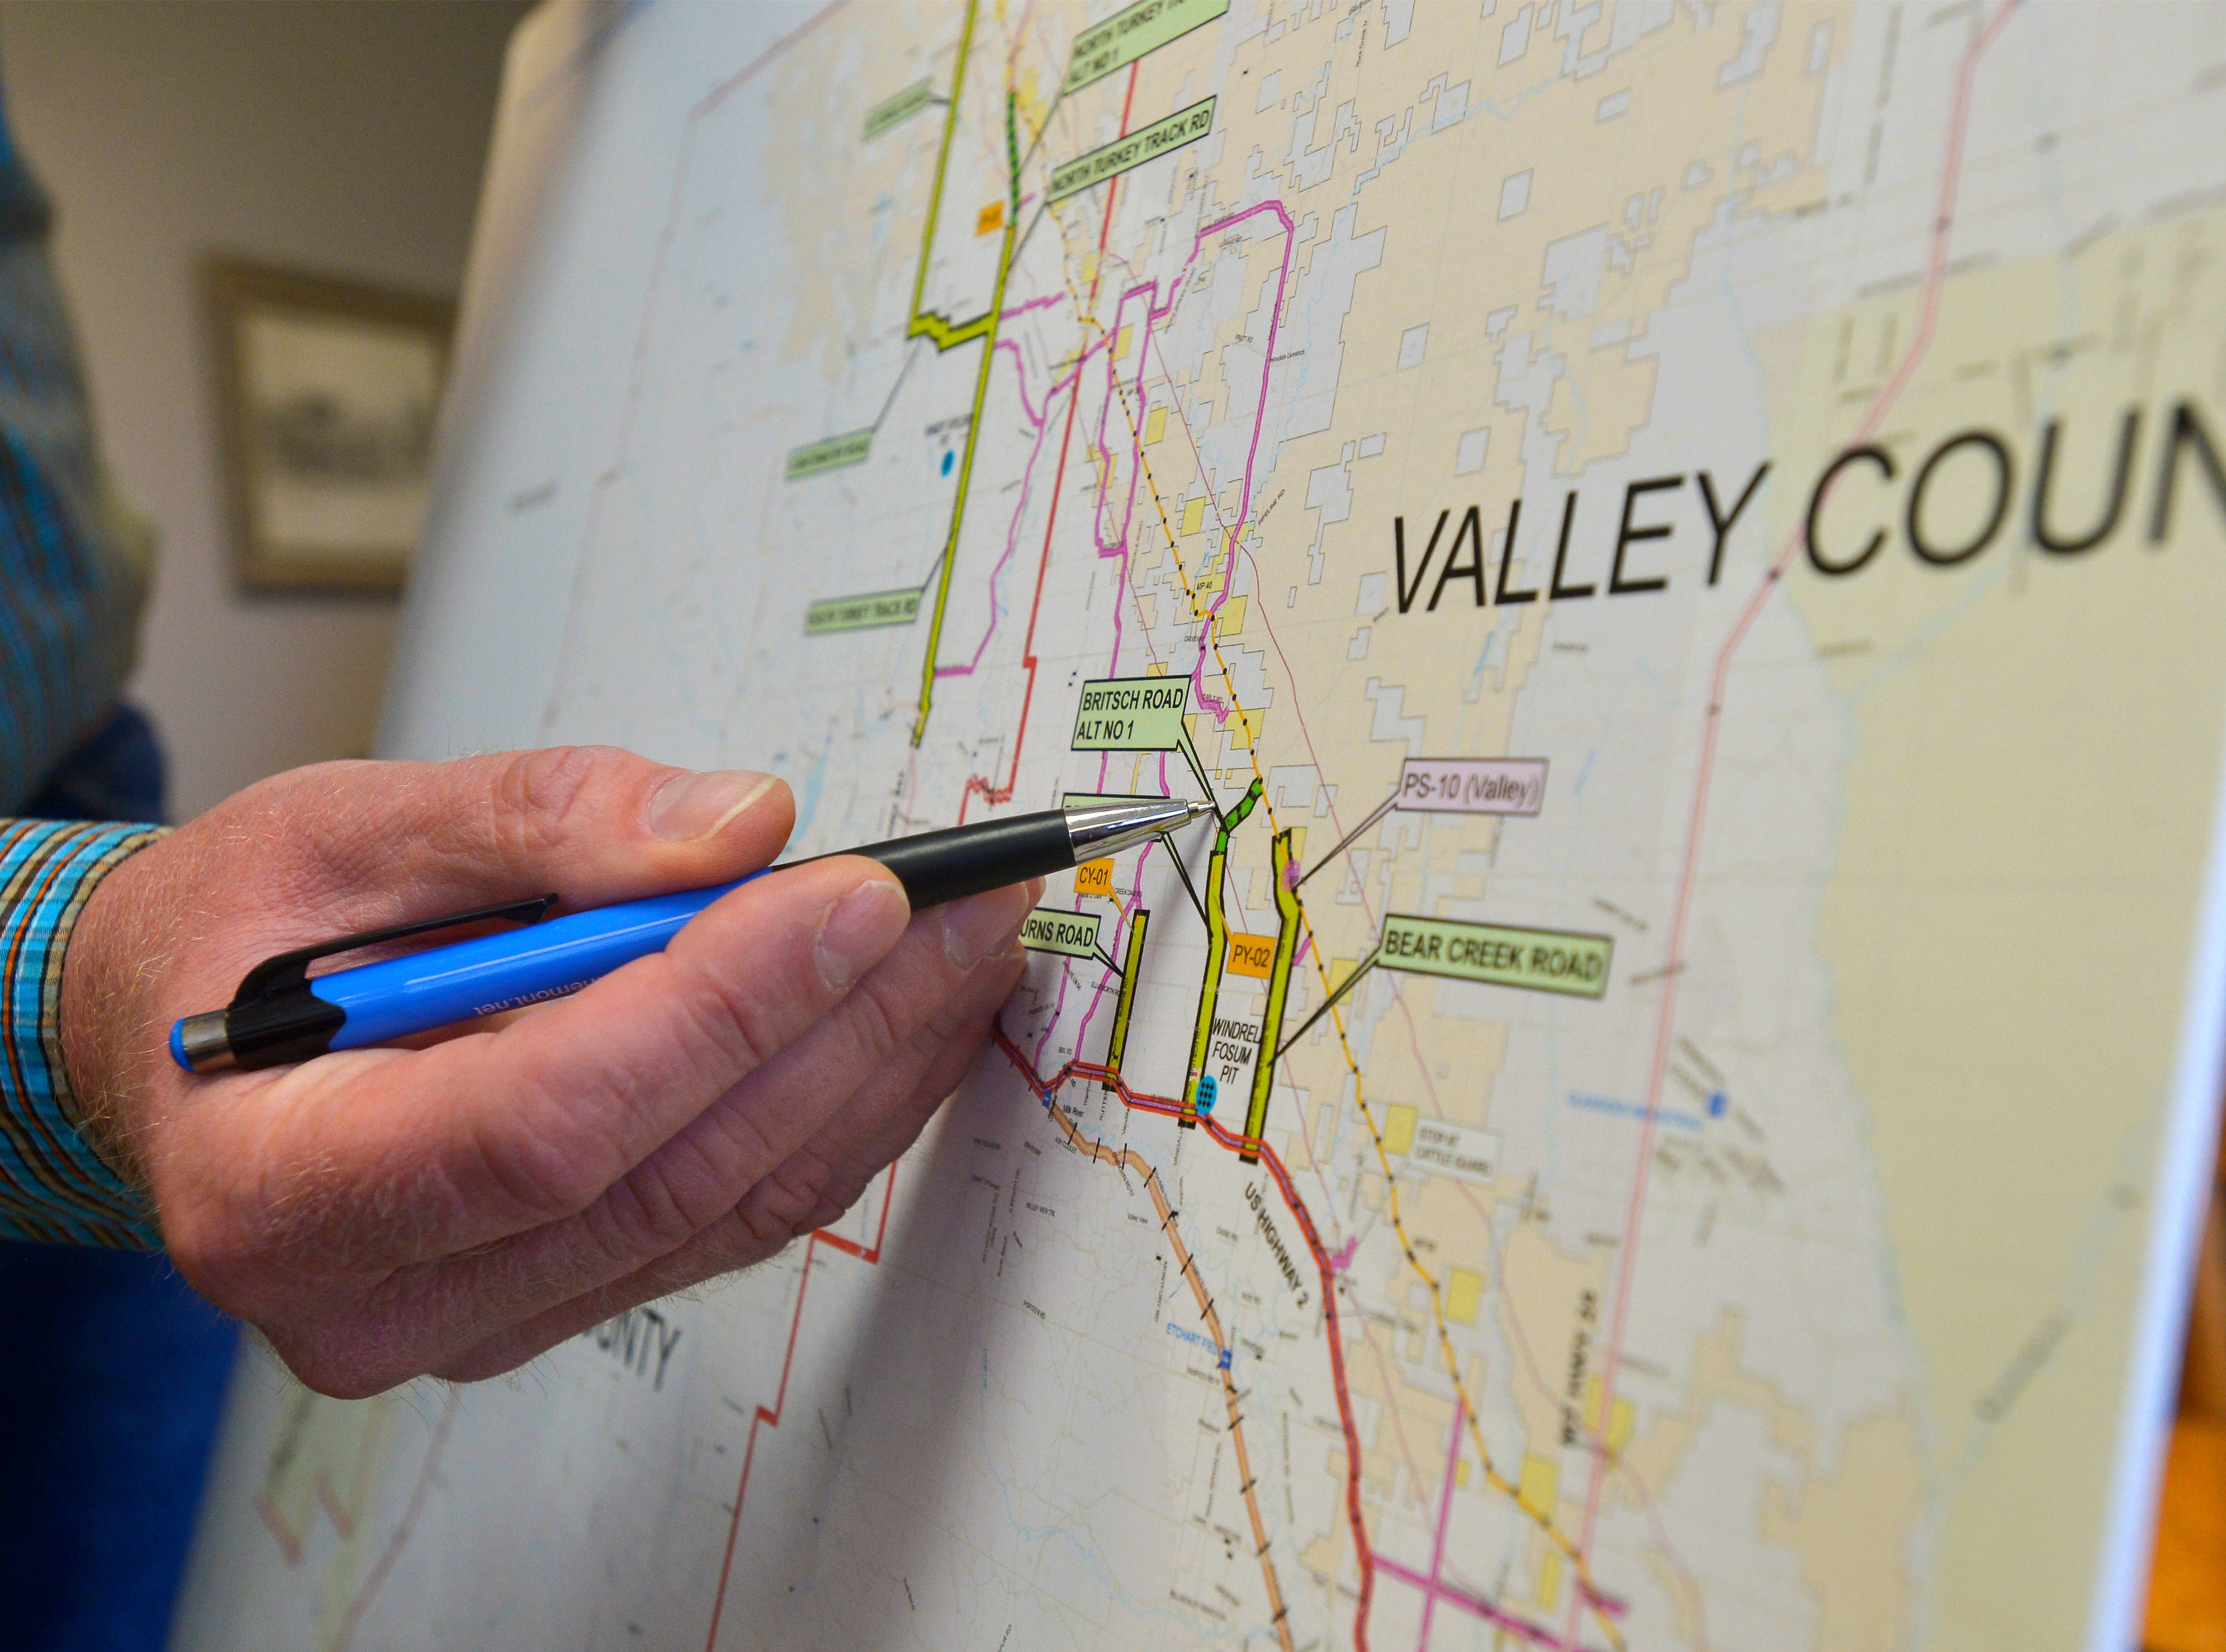 Valley County Commissioner Paul Tweten points locations of the Keystone XL Pipeline infrastructure in Valley County.